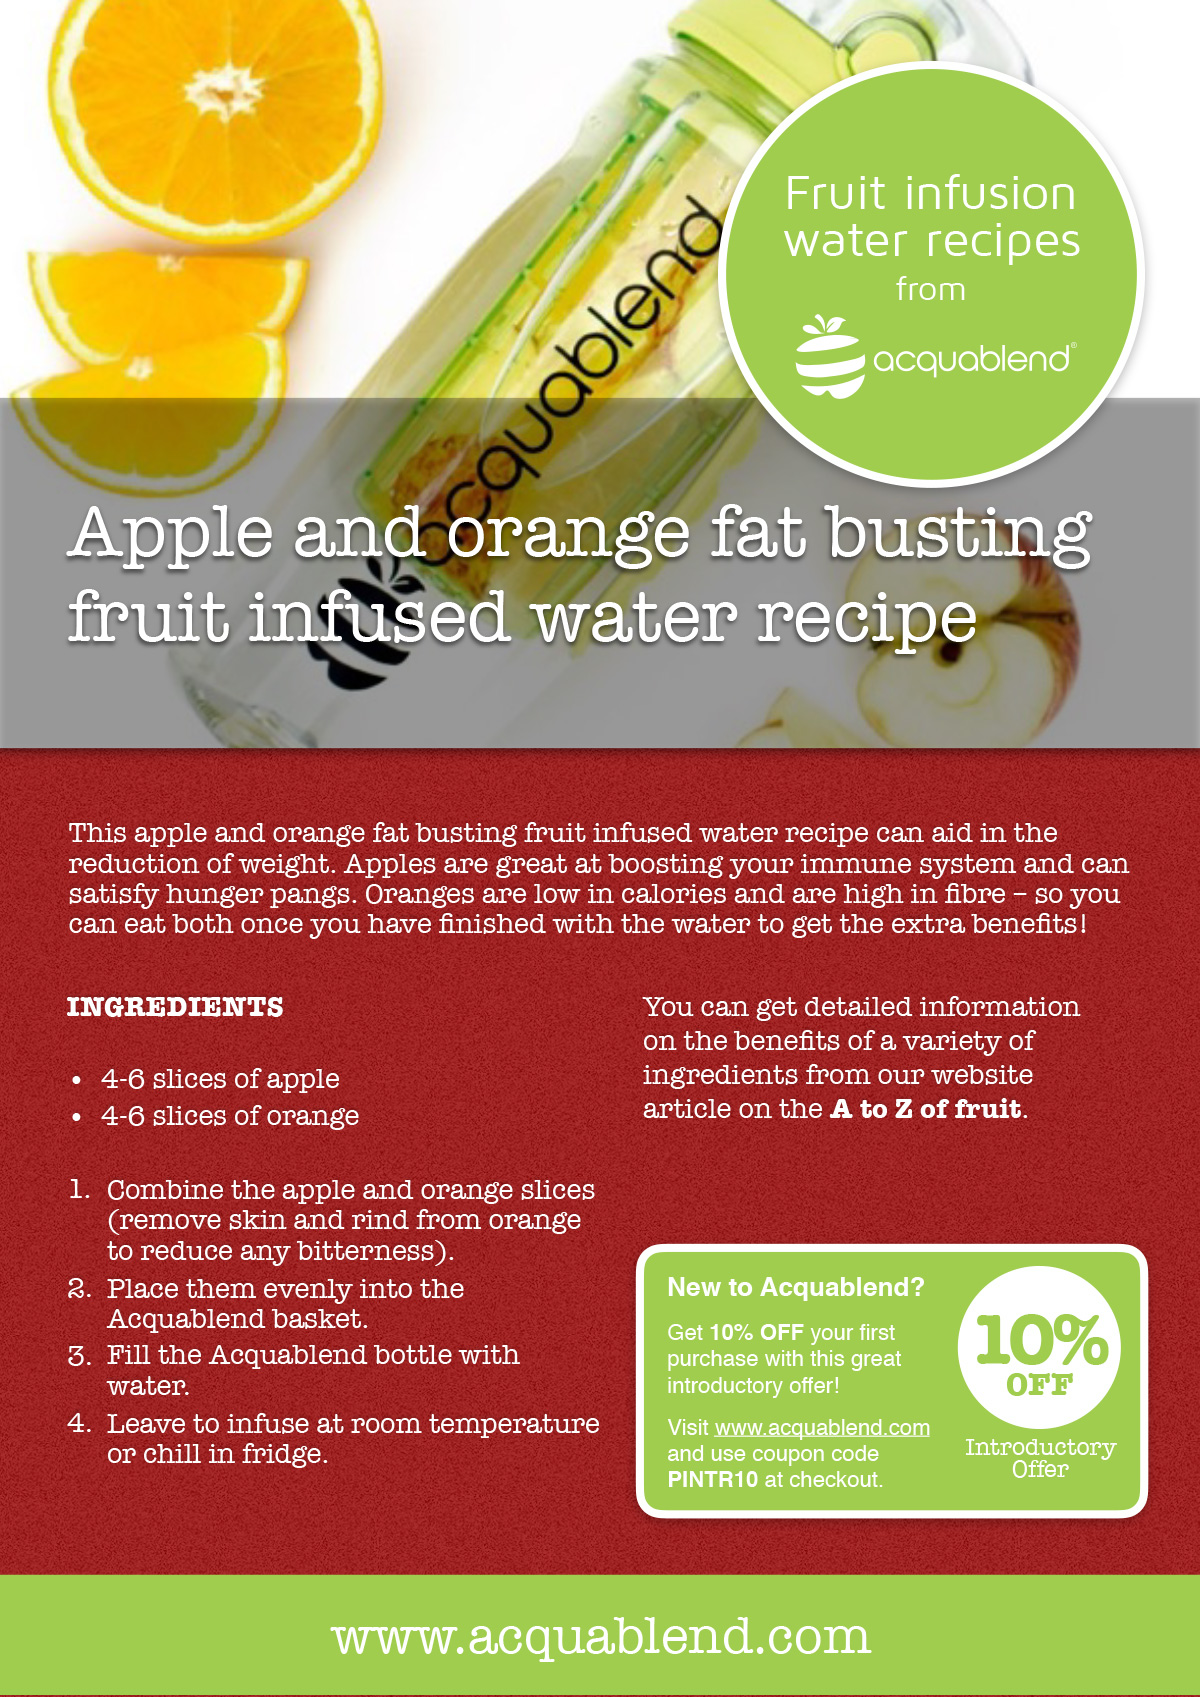 Apple and orange fat busting fruit infused water recipe.